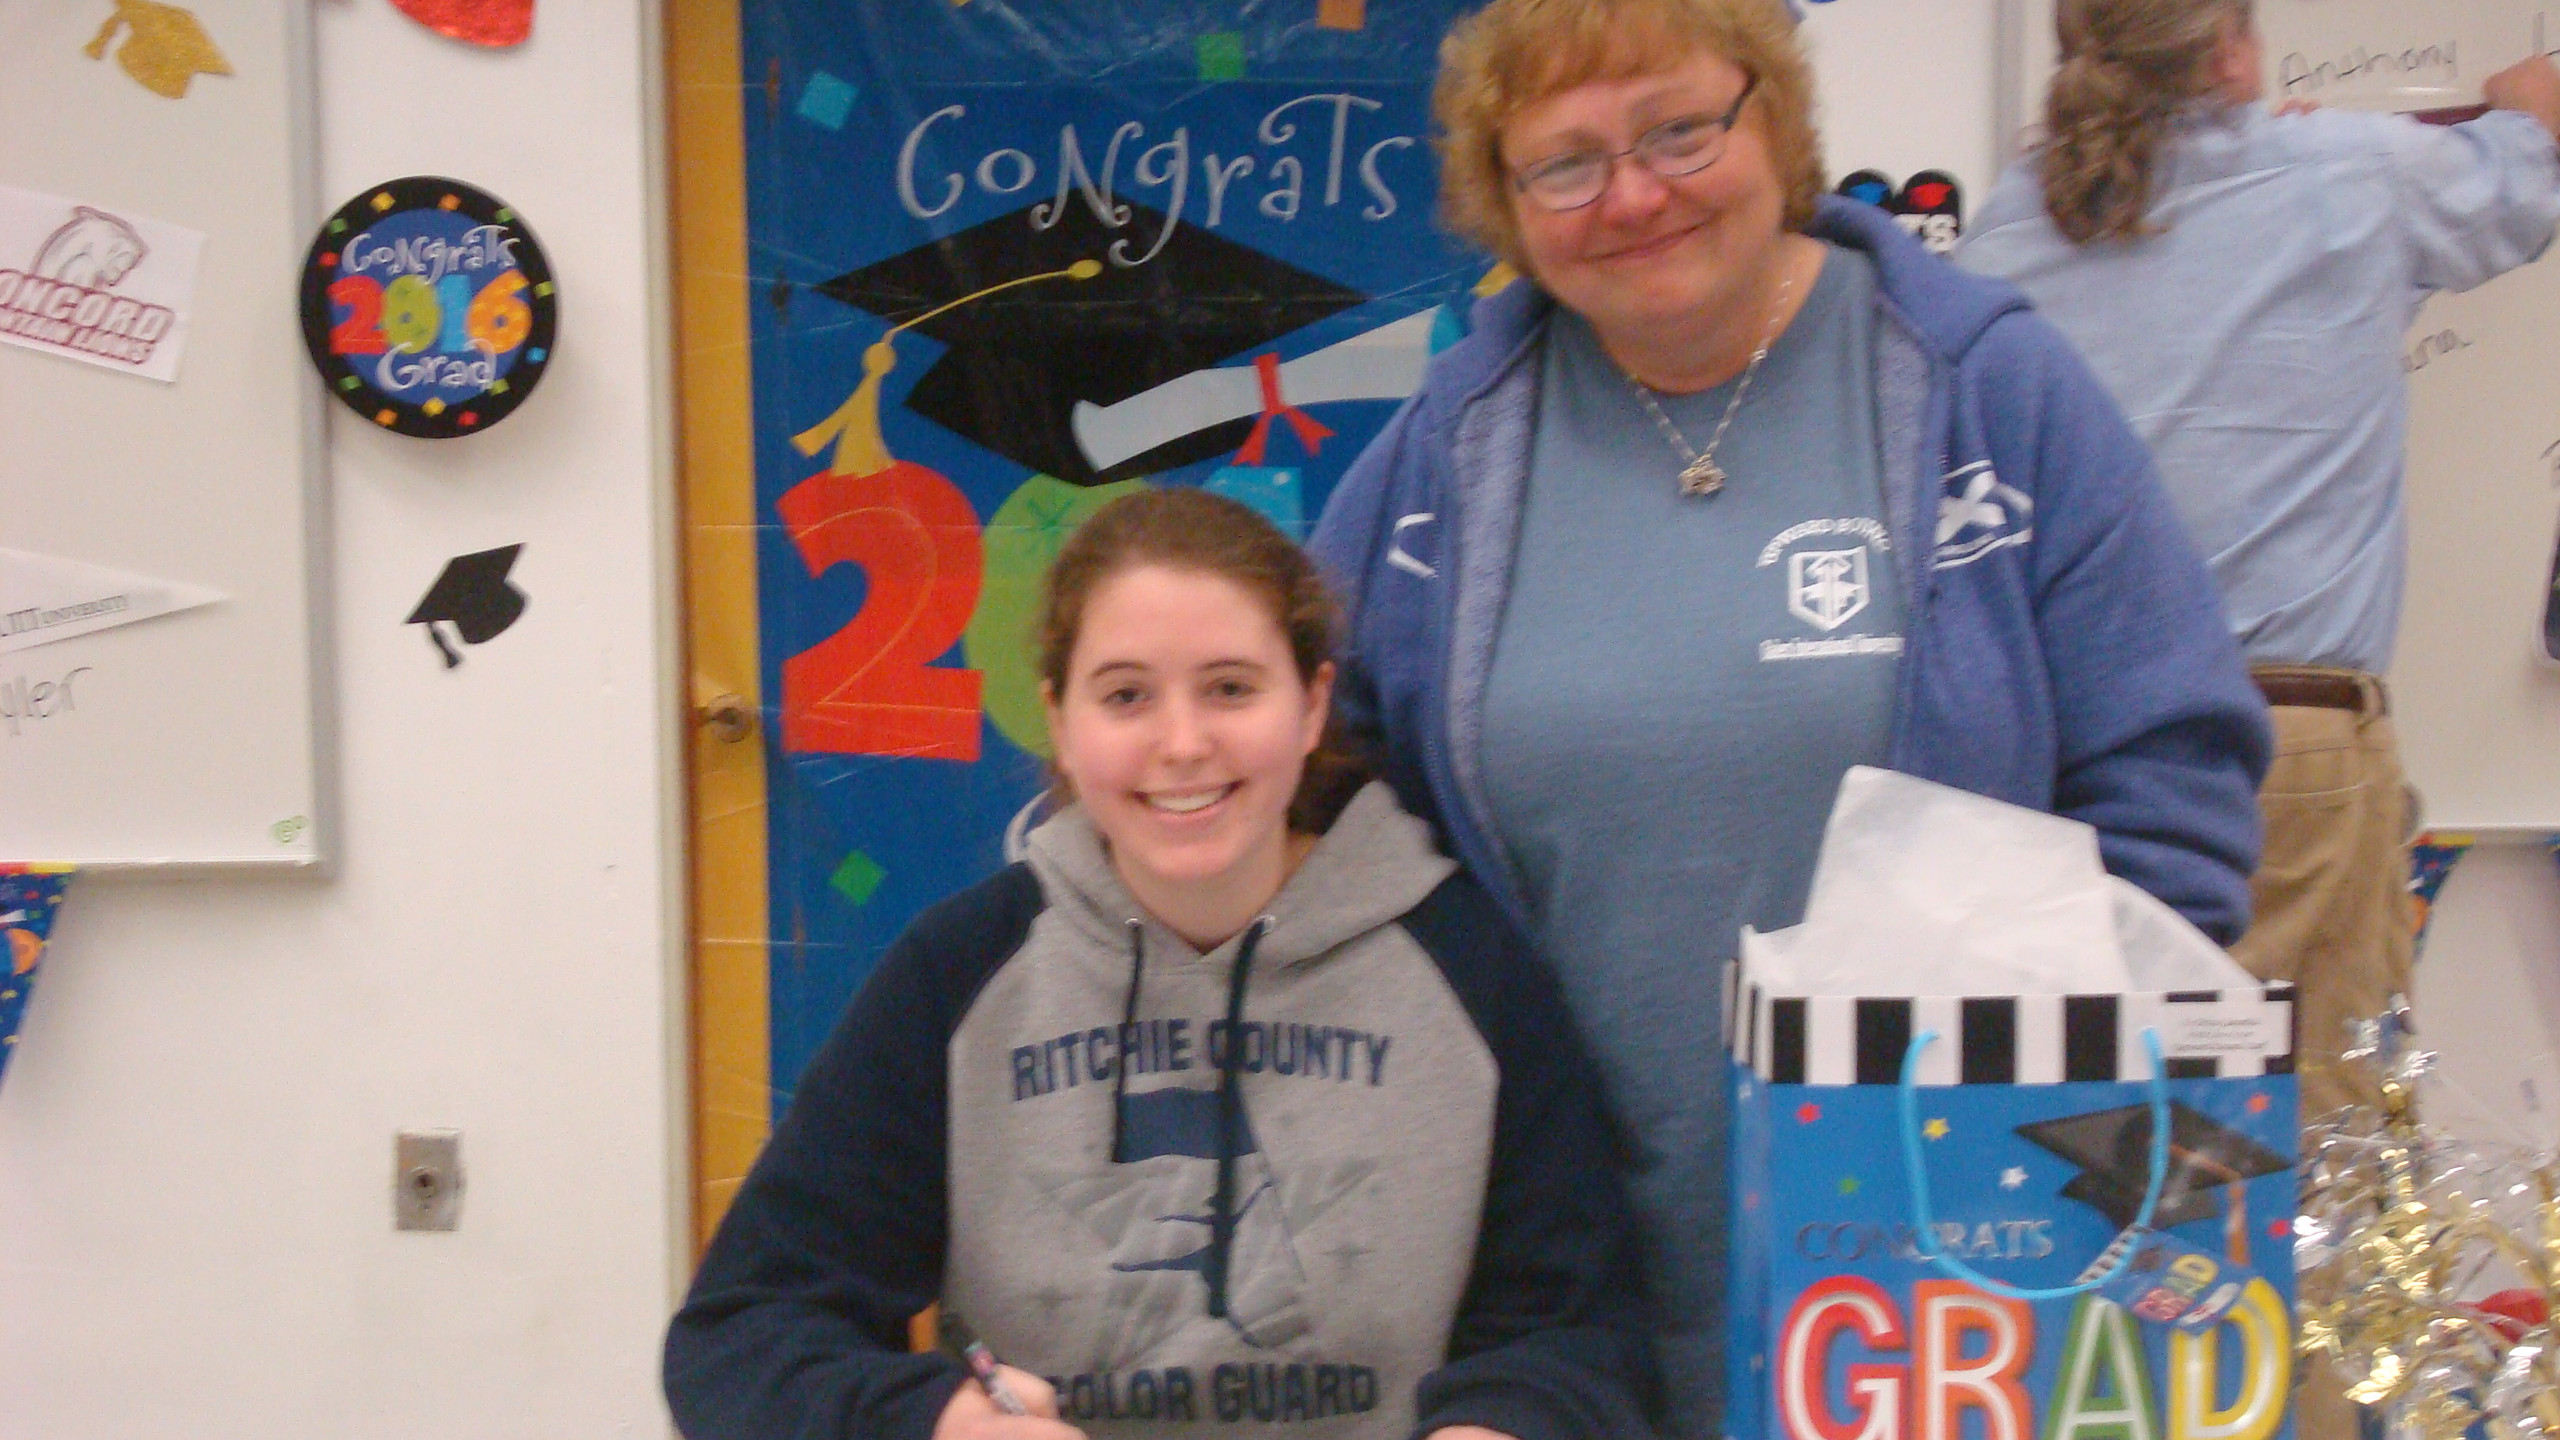 Erica plans to attend Middle Tennessee State University